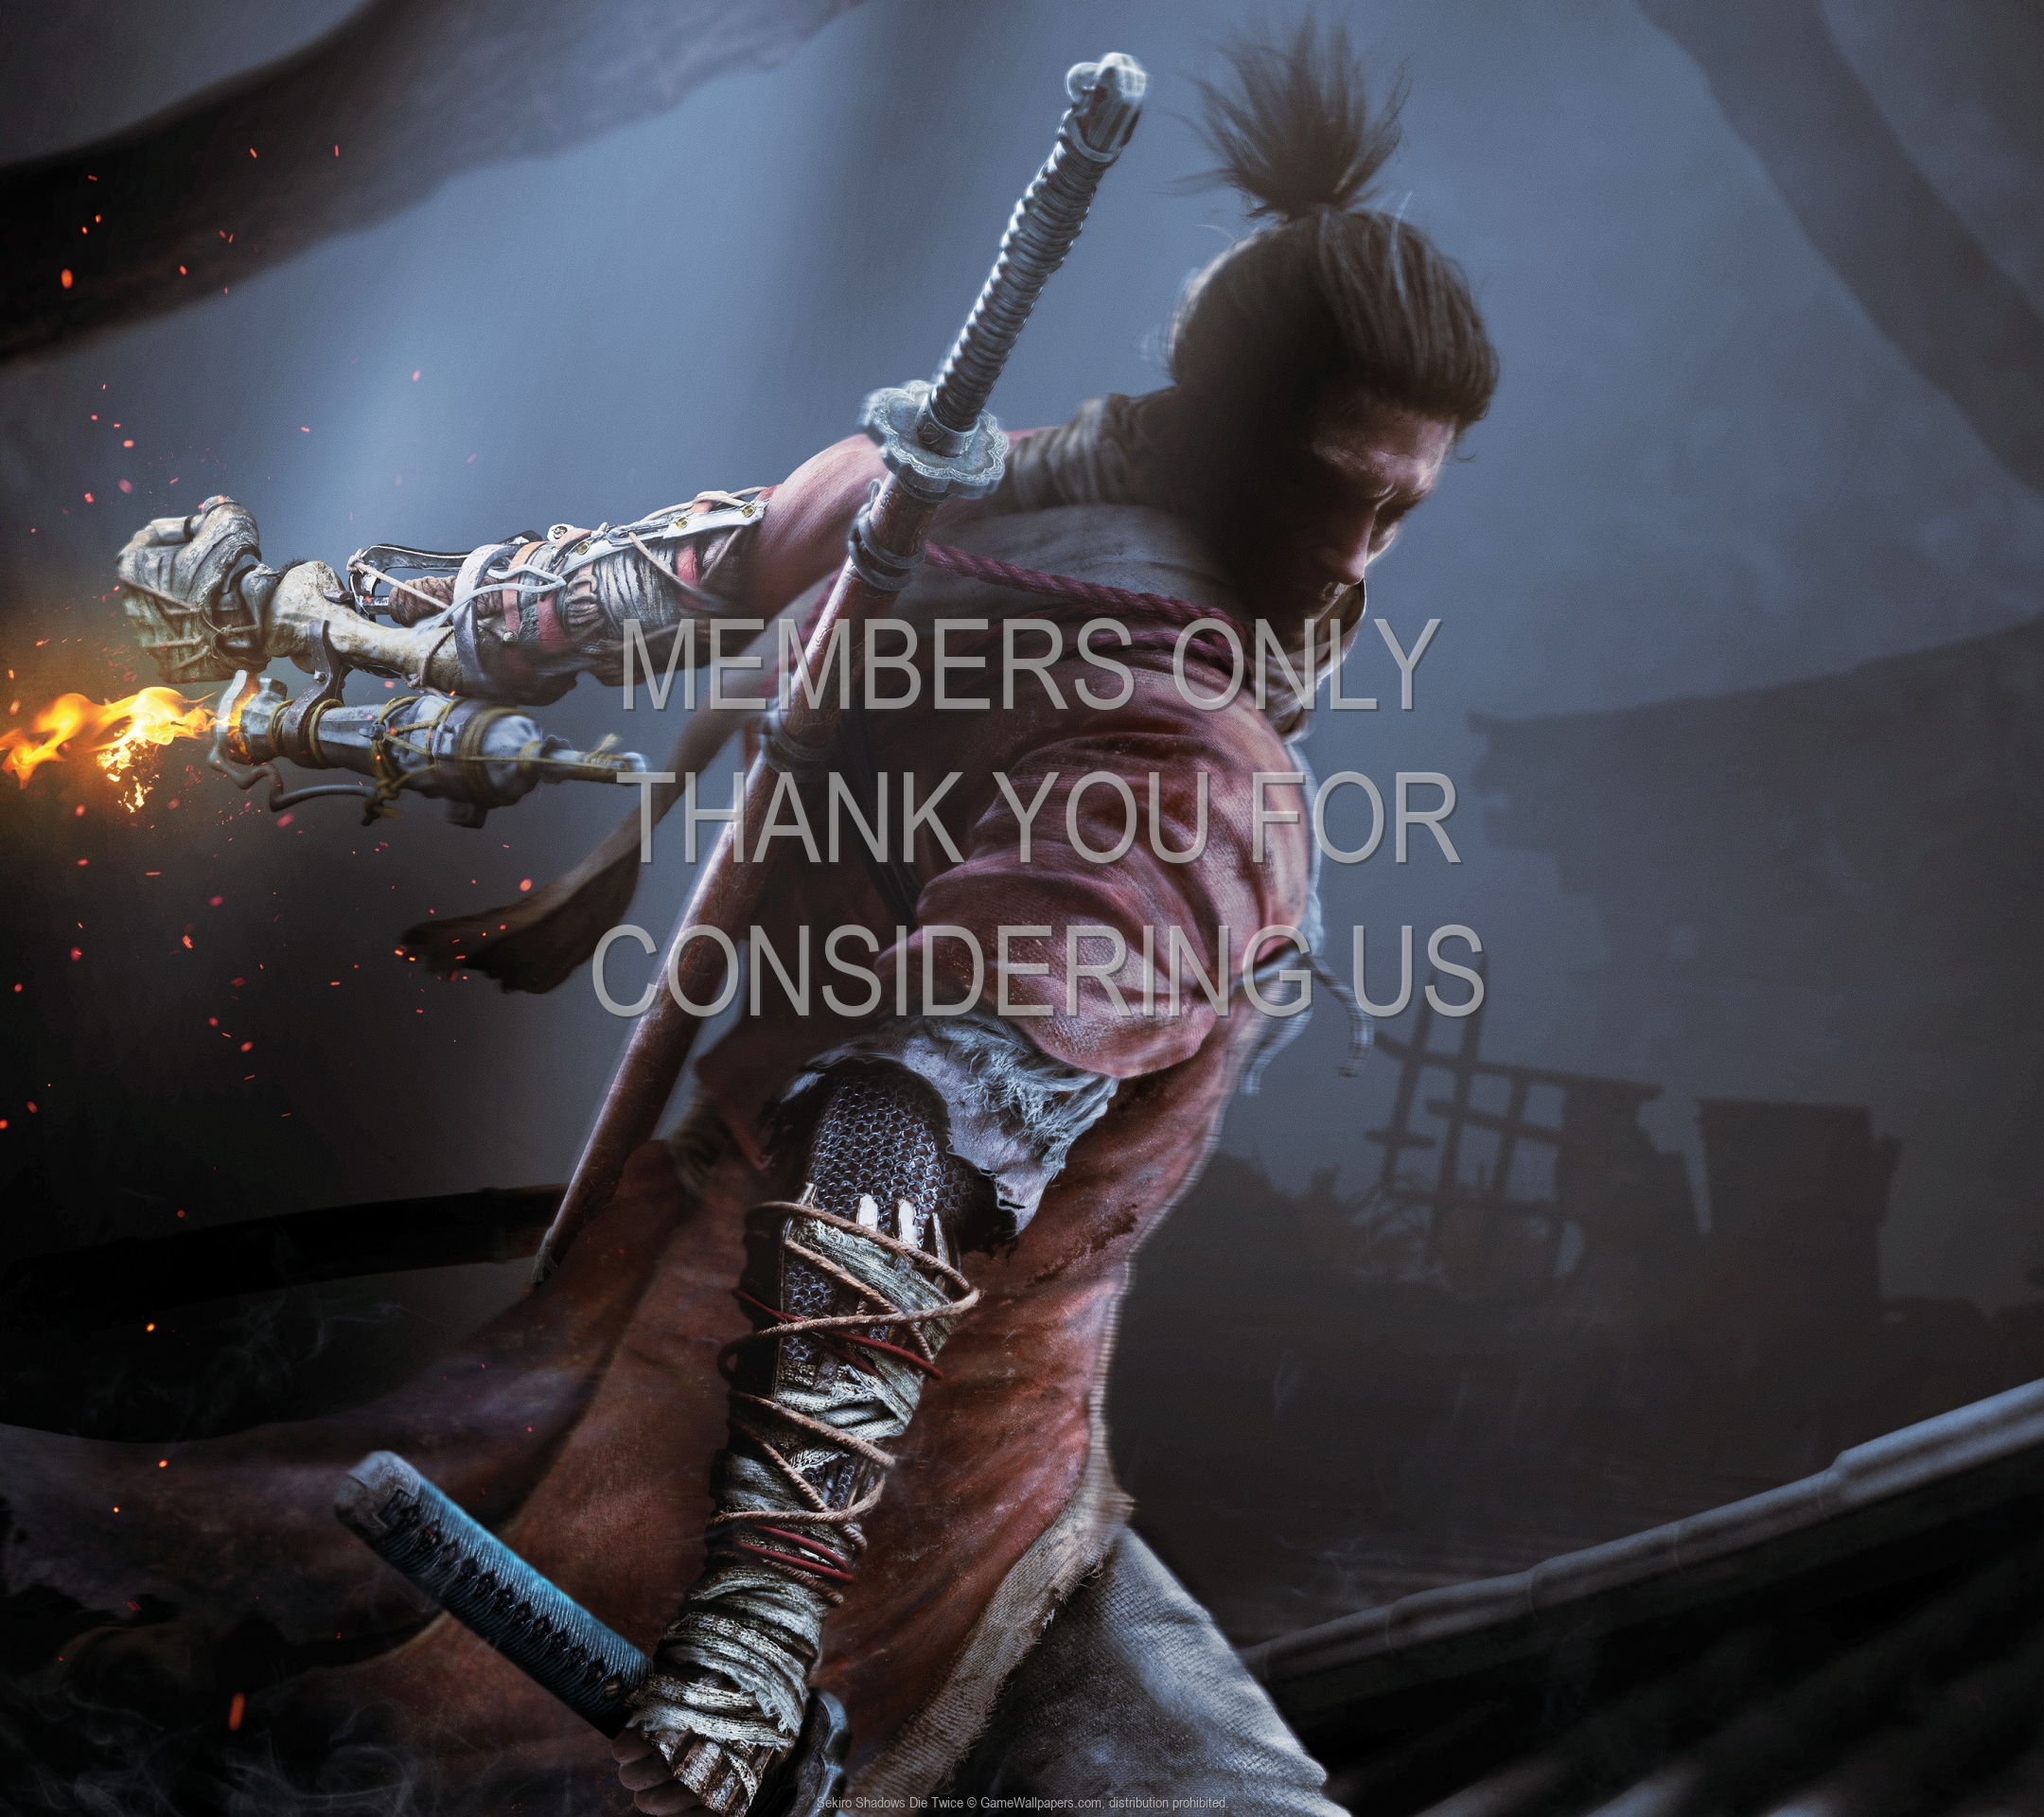 Sekiro: Shadows Die Twice 1920x1080 Móvil fondo de escritorio 04